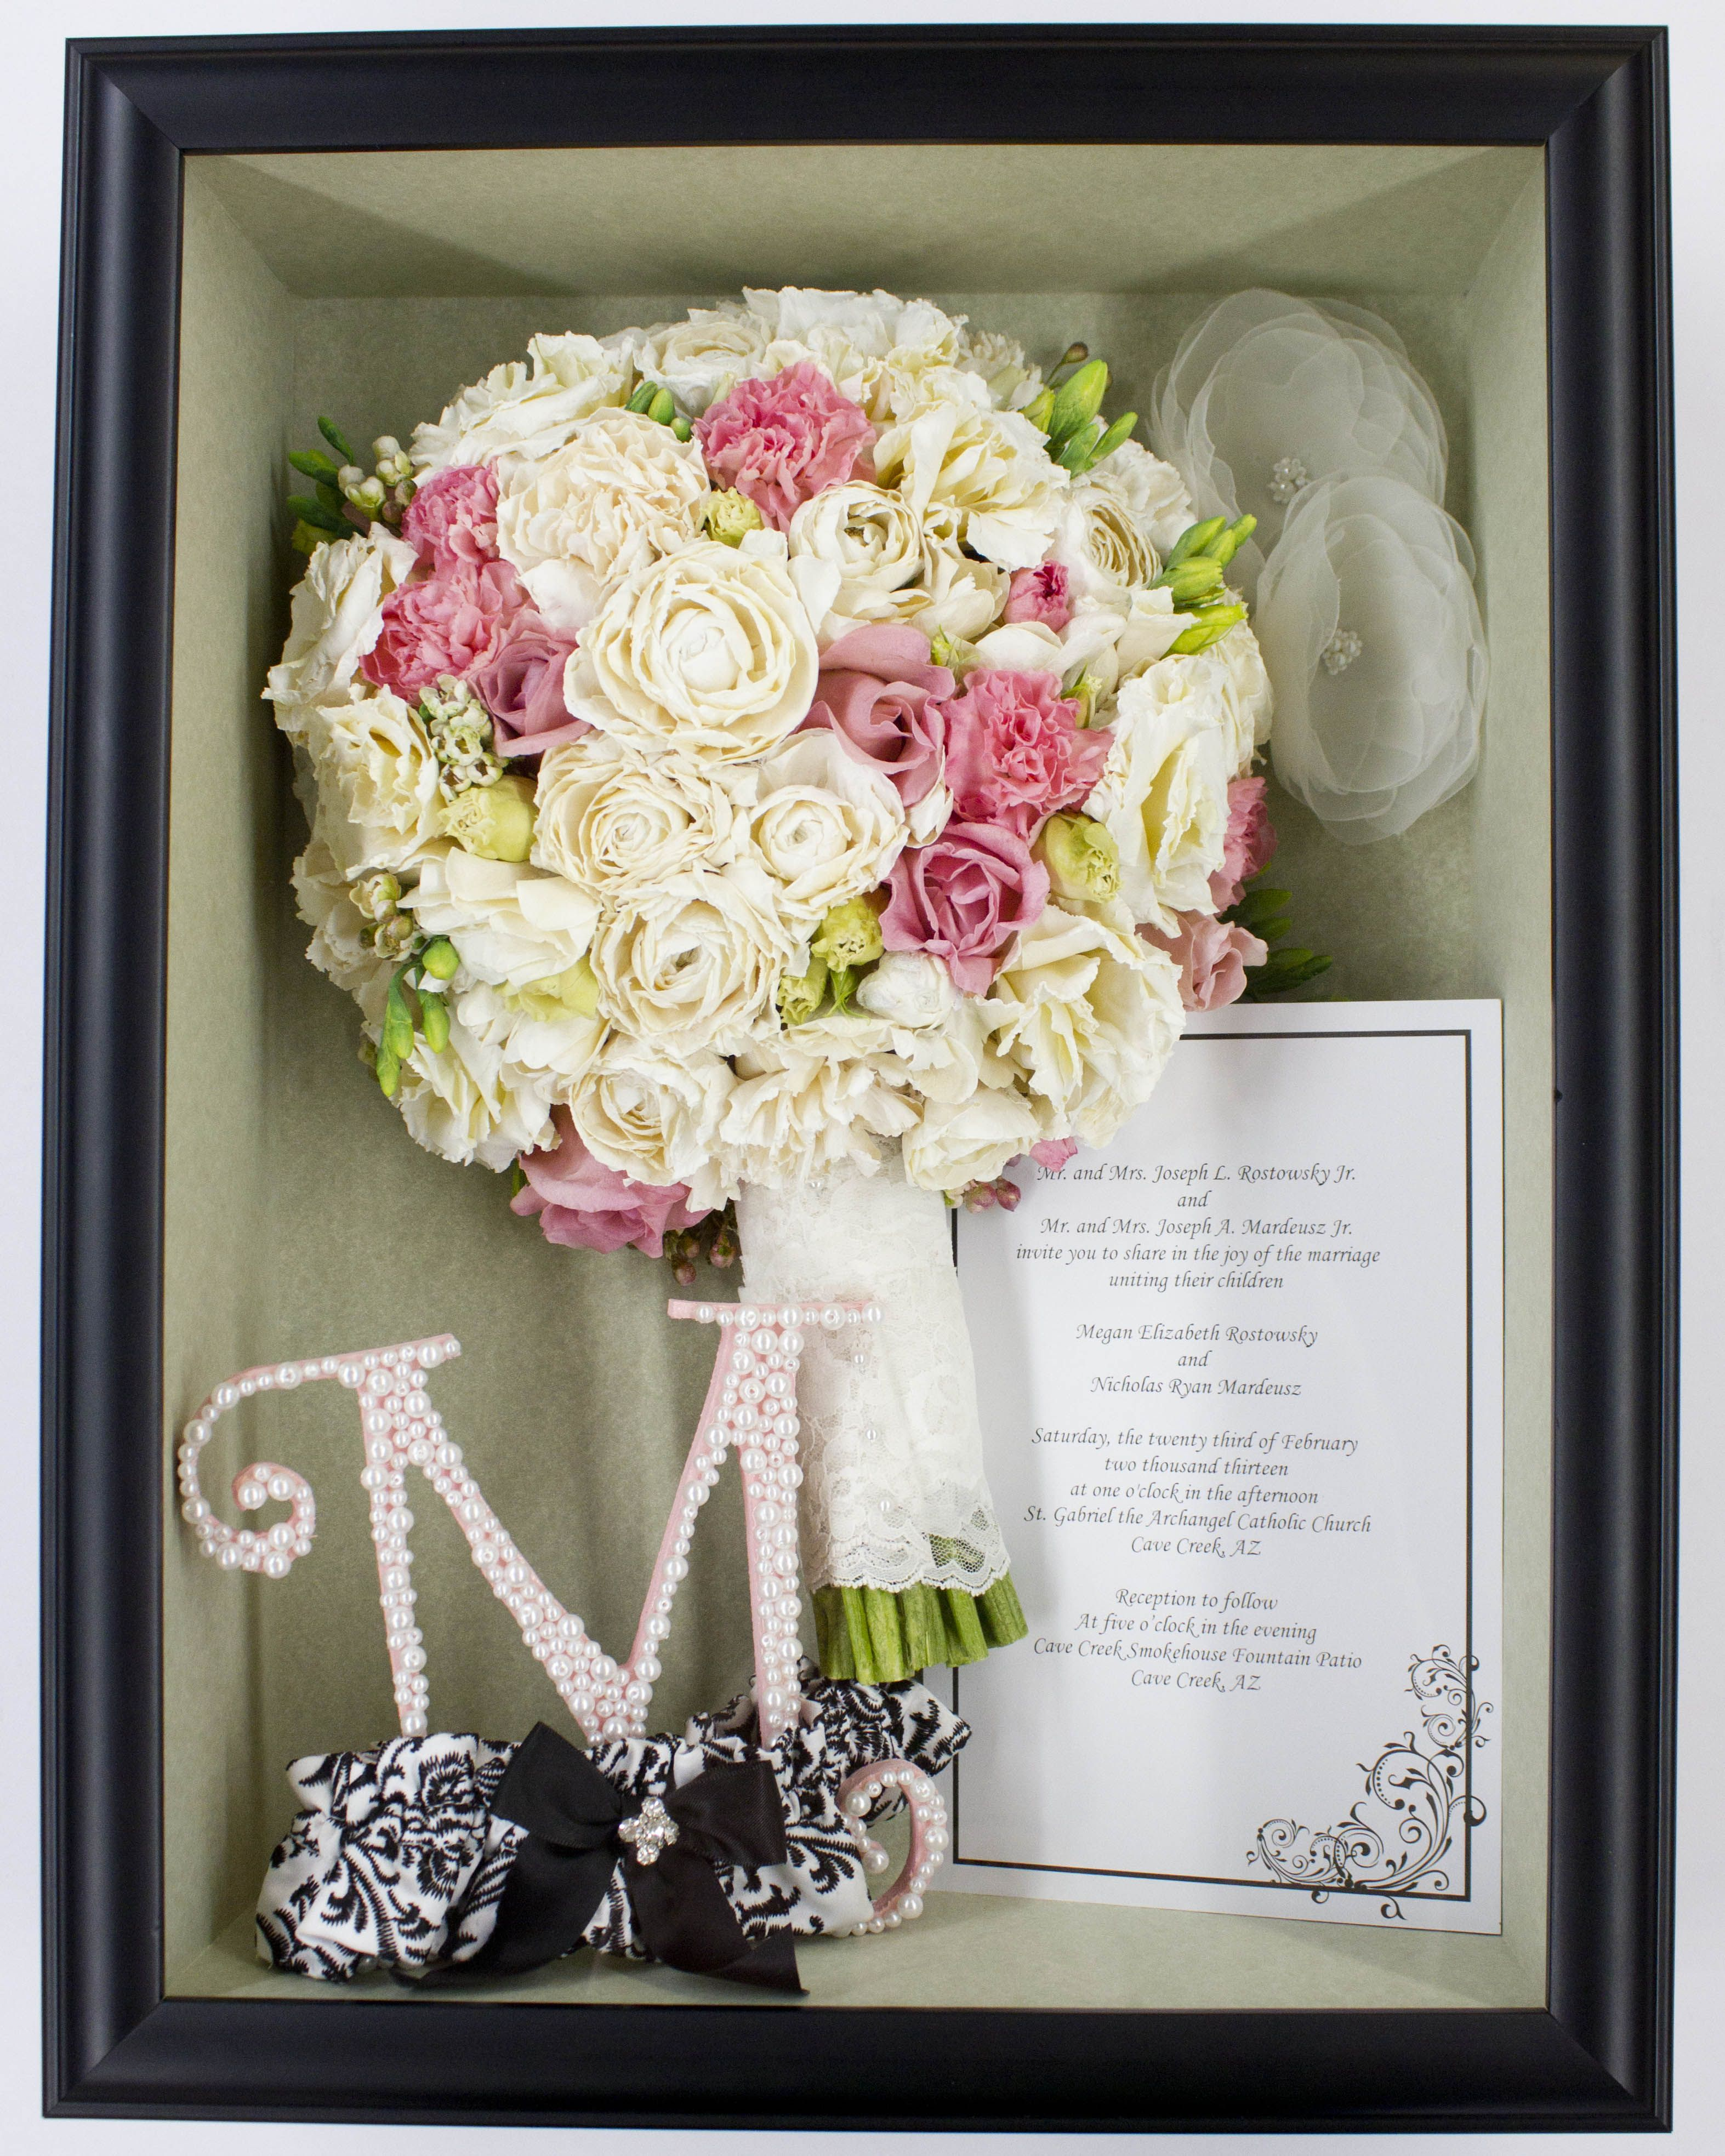 A bouquet of pink roses & carnations, with white